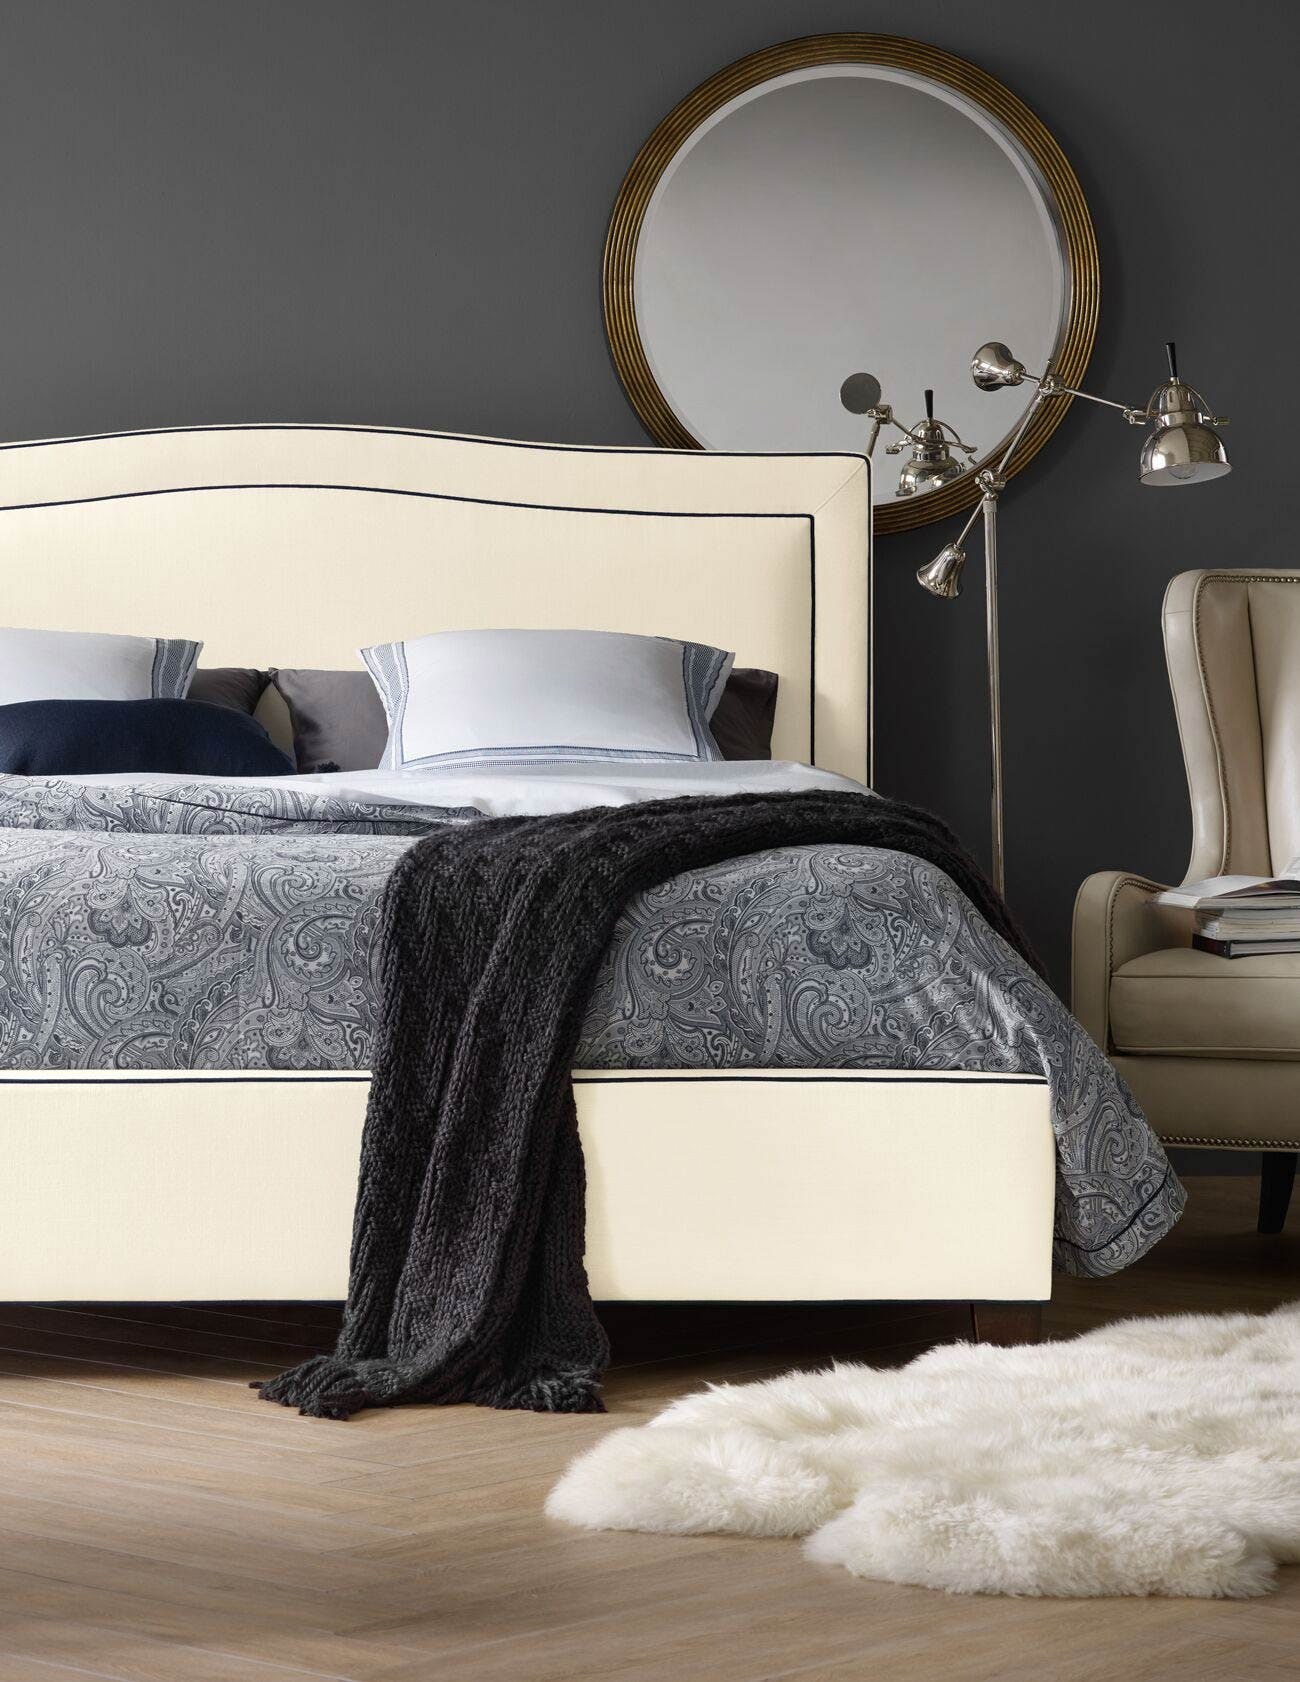 Create The Perfect Environmentcustom Upholstered Beds